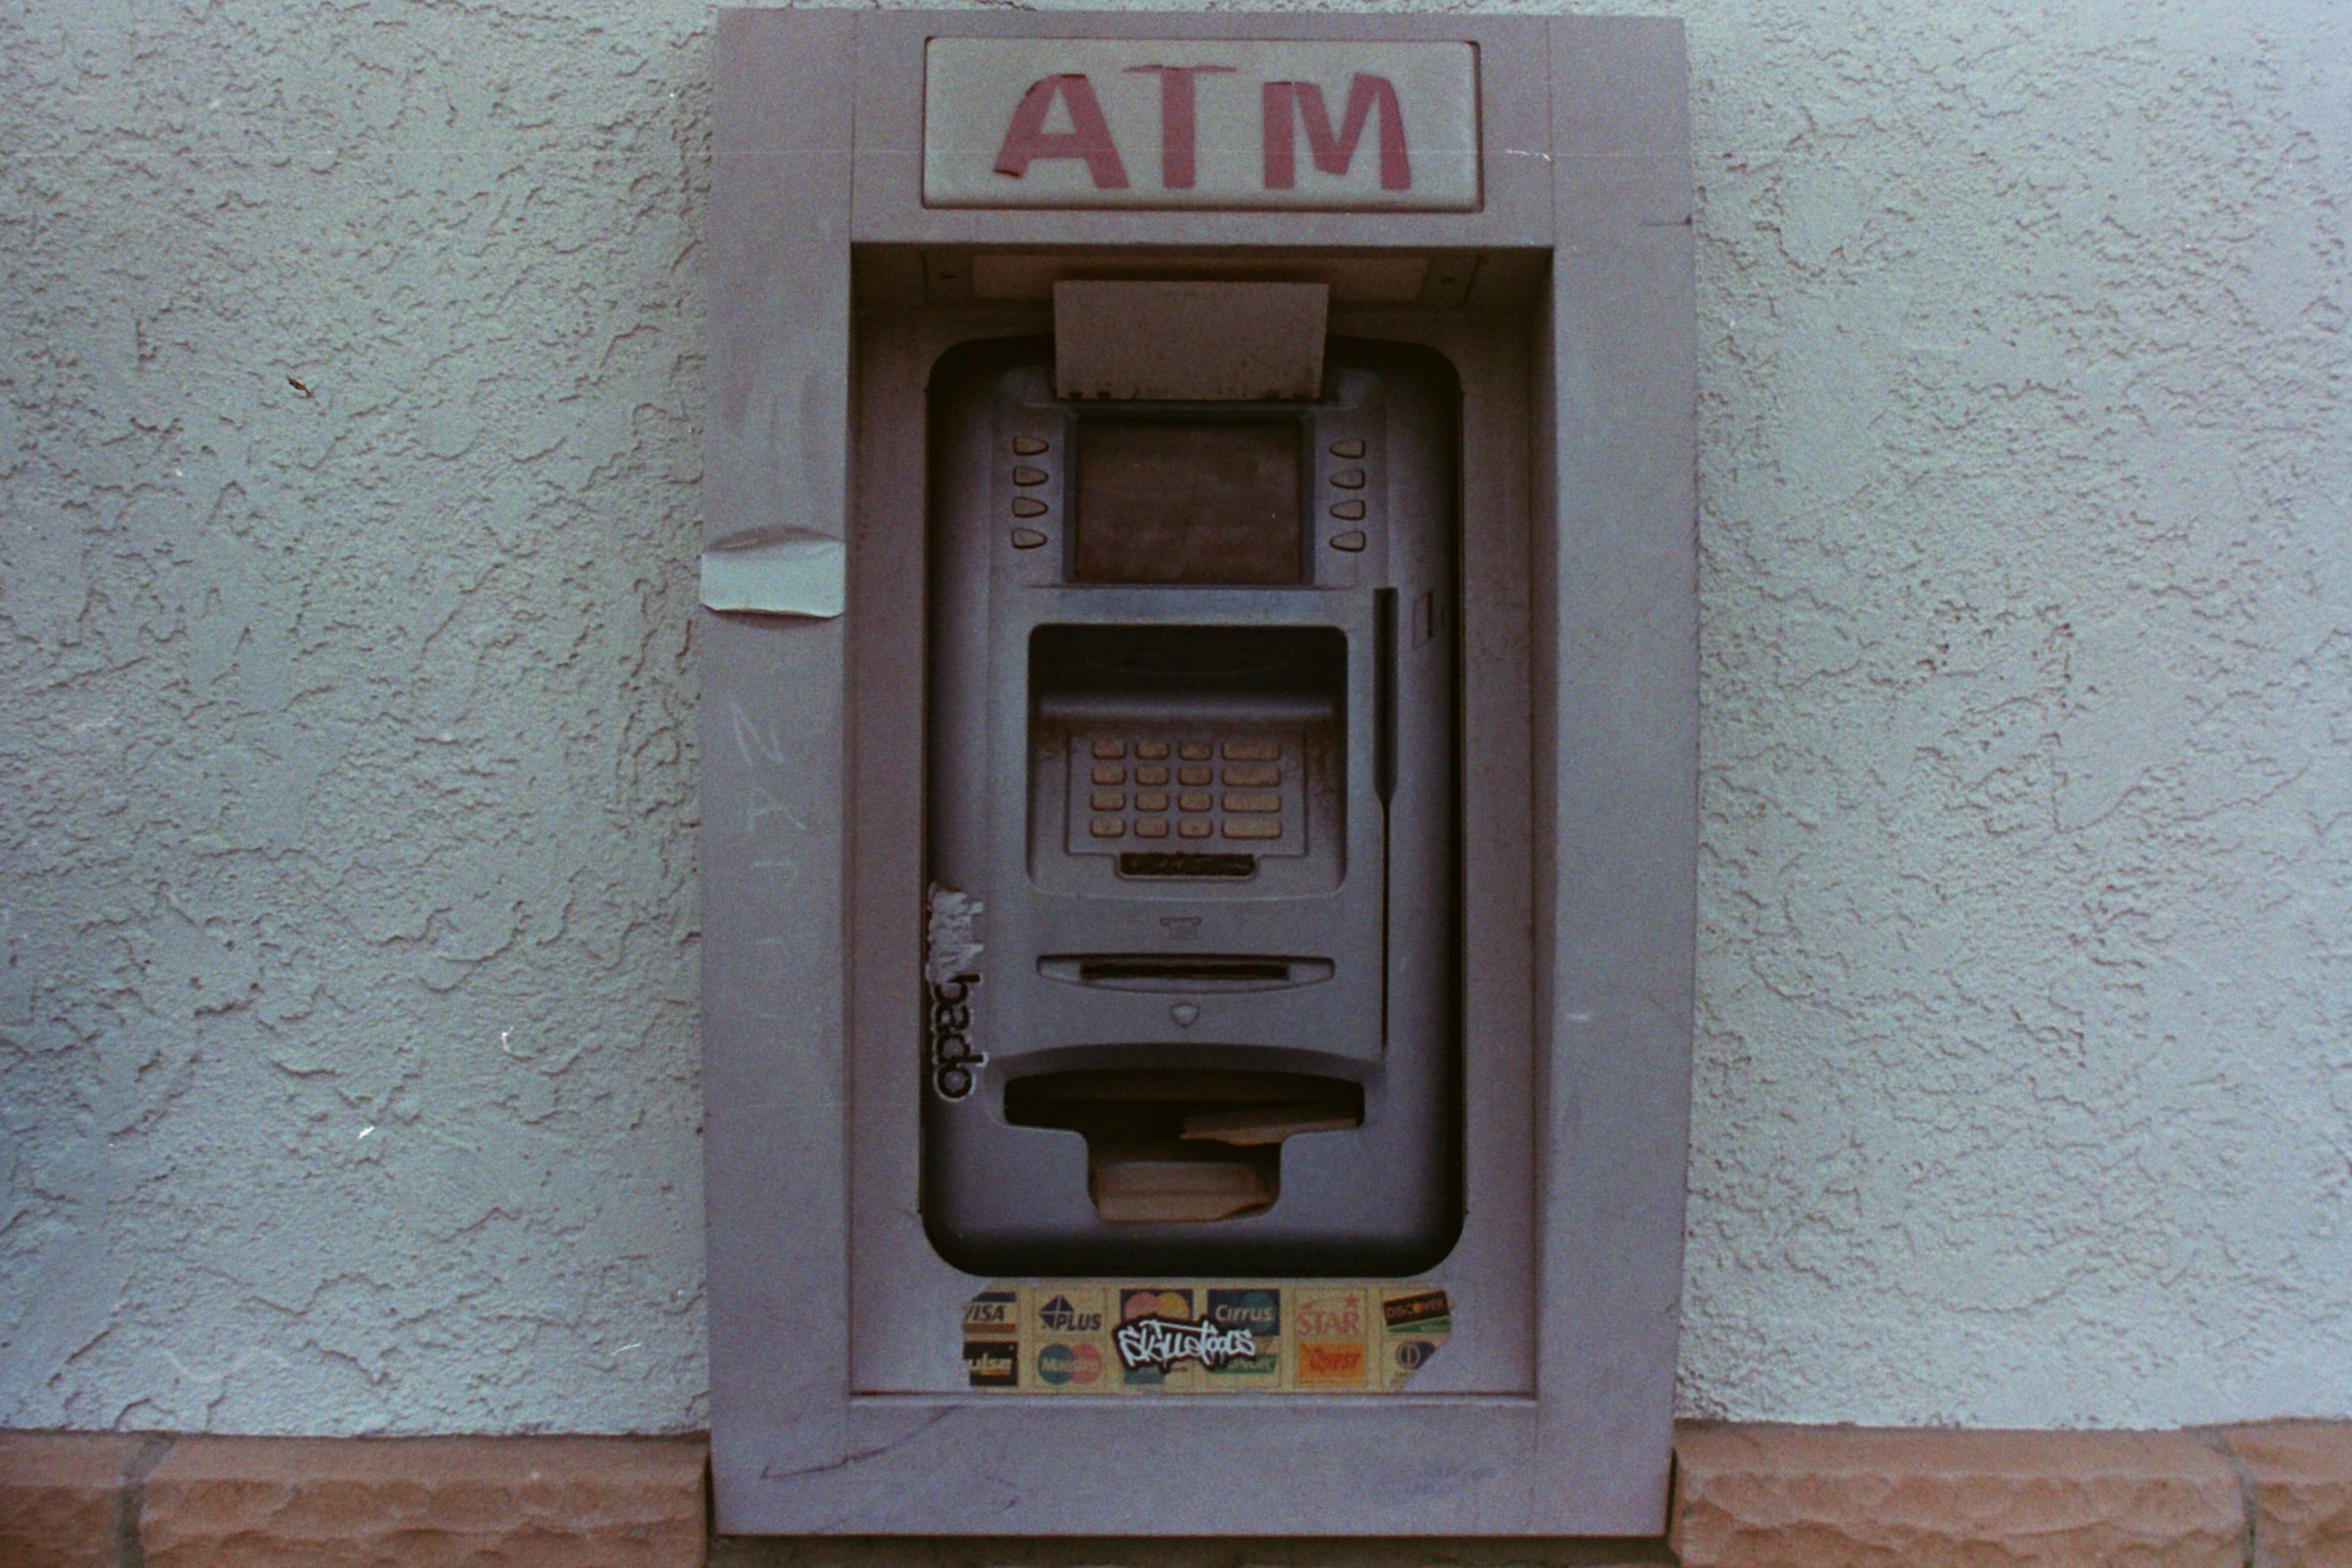 Grey ATM machine.